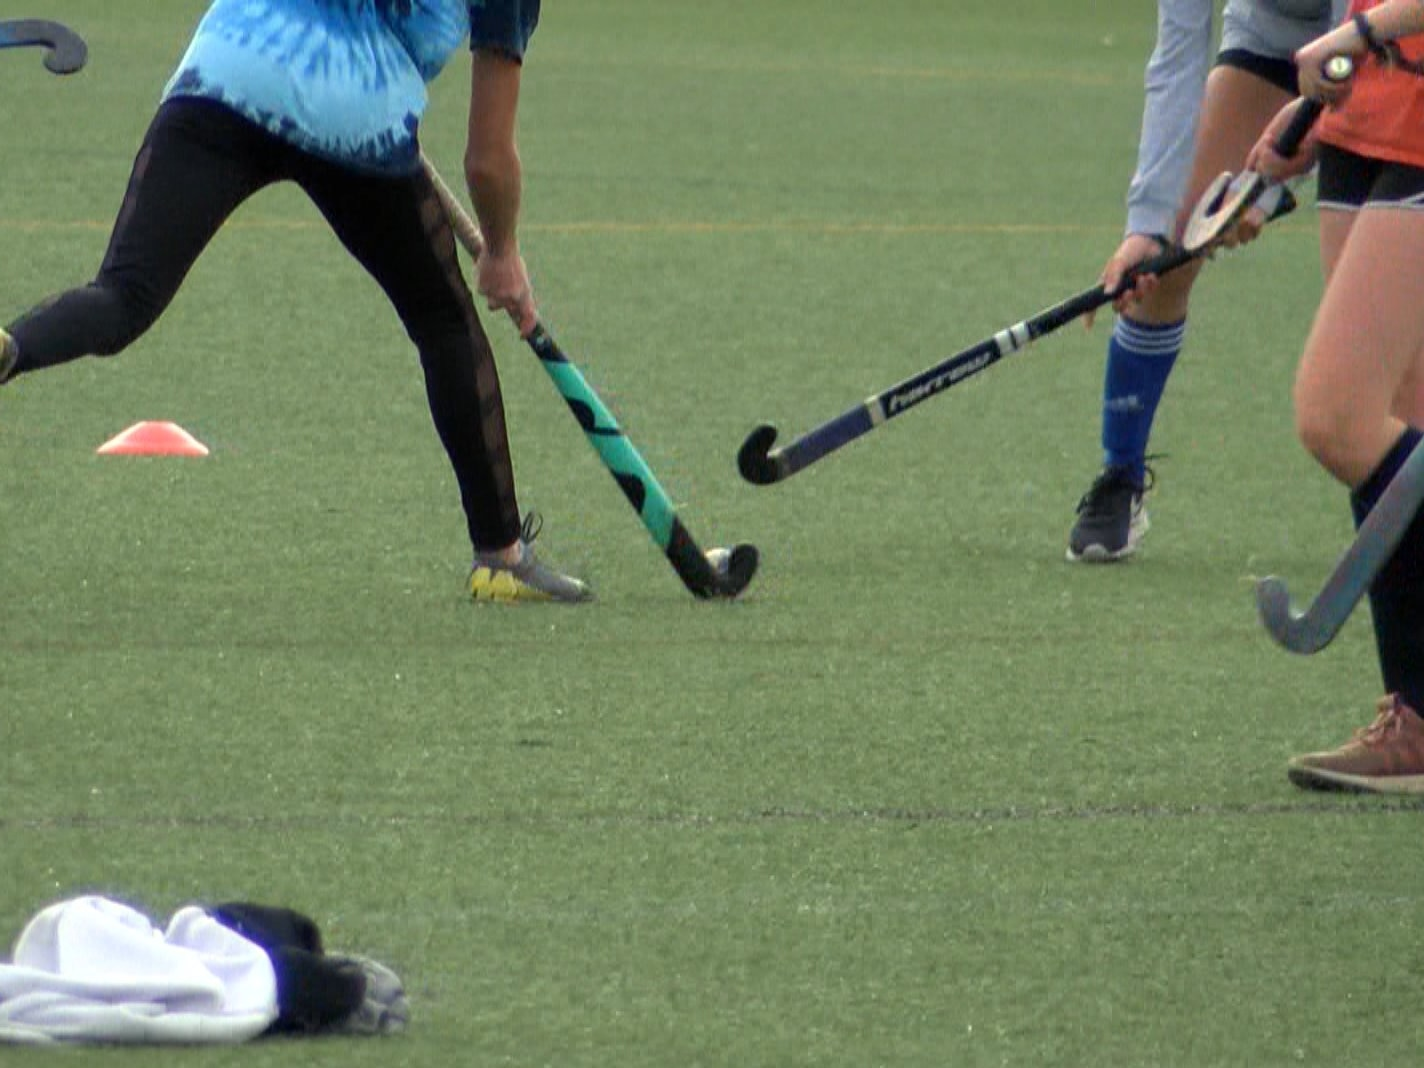 Strict COVID-19 safety measures in place for annual field hockey tournament in Chesterfield